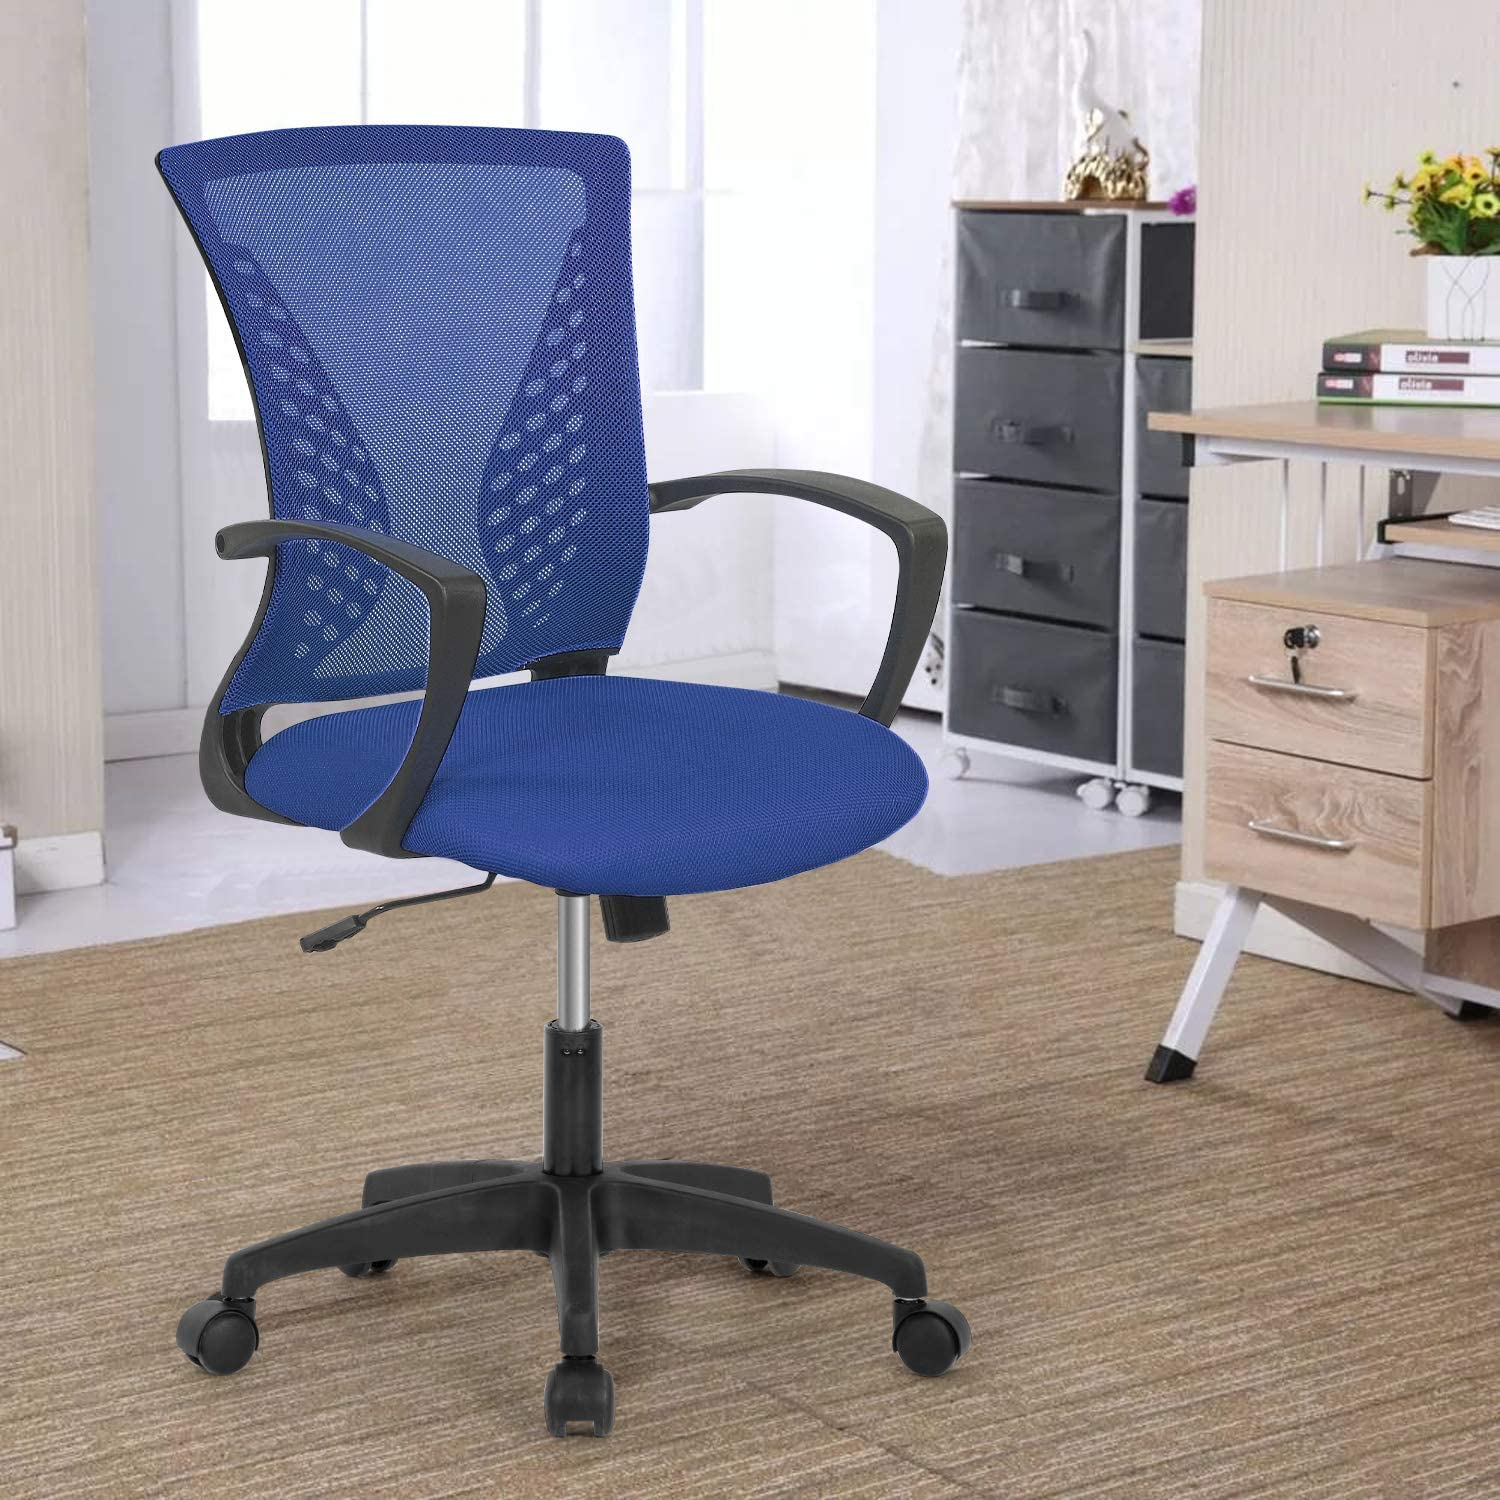 Office Products Desk Chairs alpha-grp.co.jp OffiClever Mesh ...